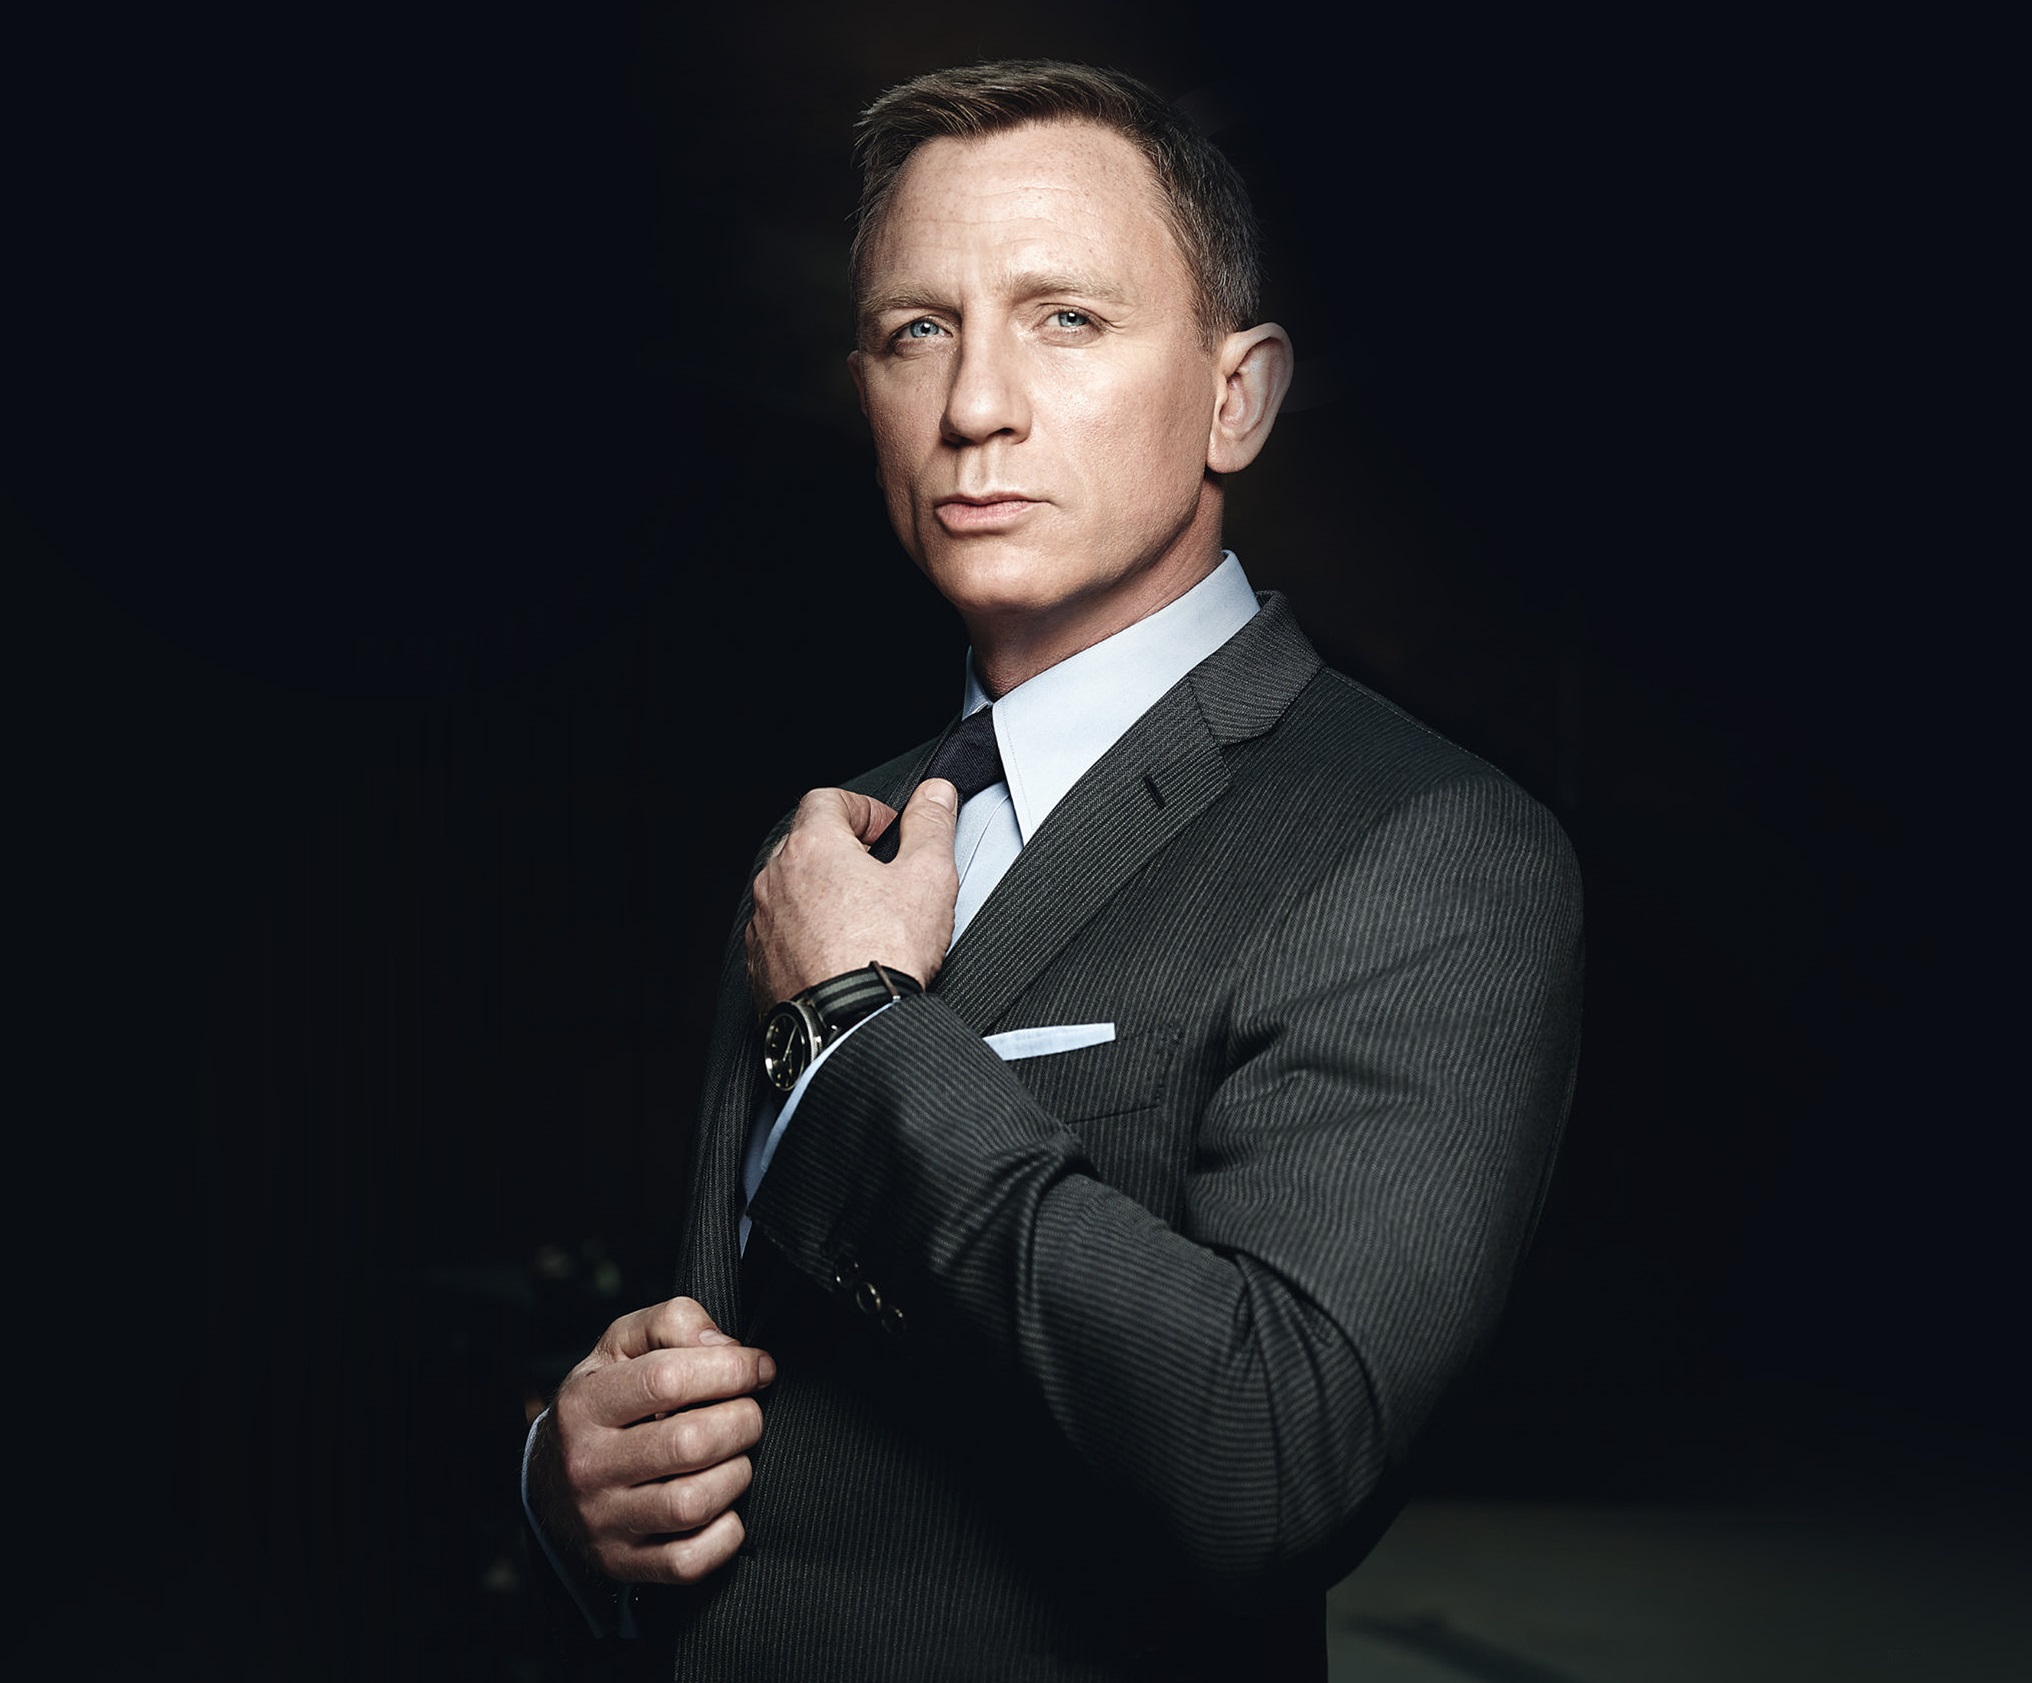 Daniel Craig Wallpaper...